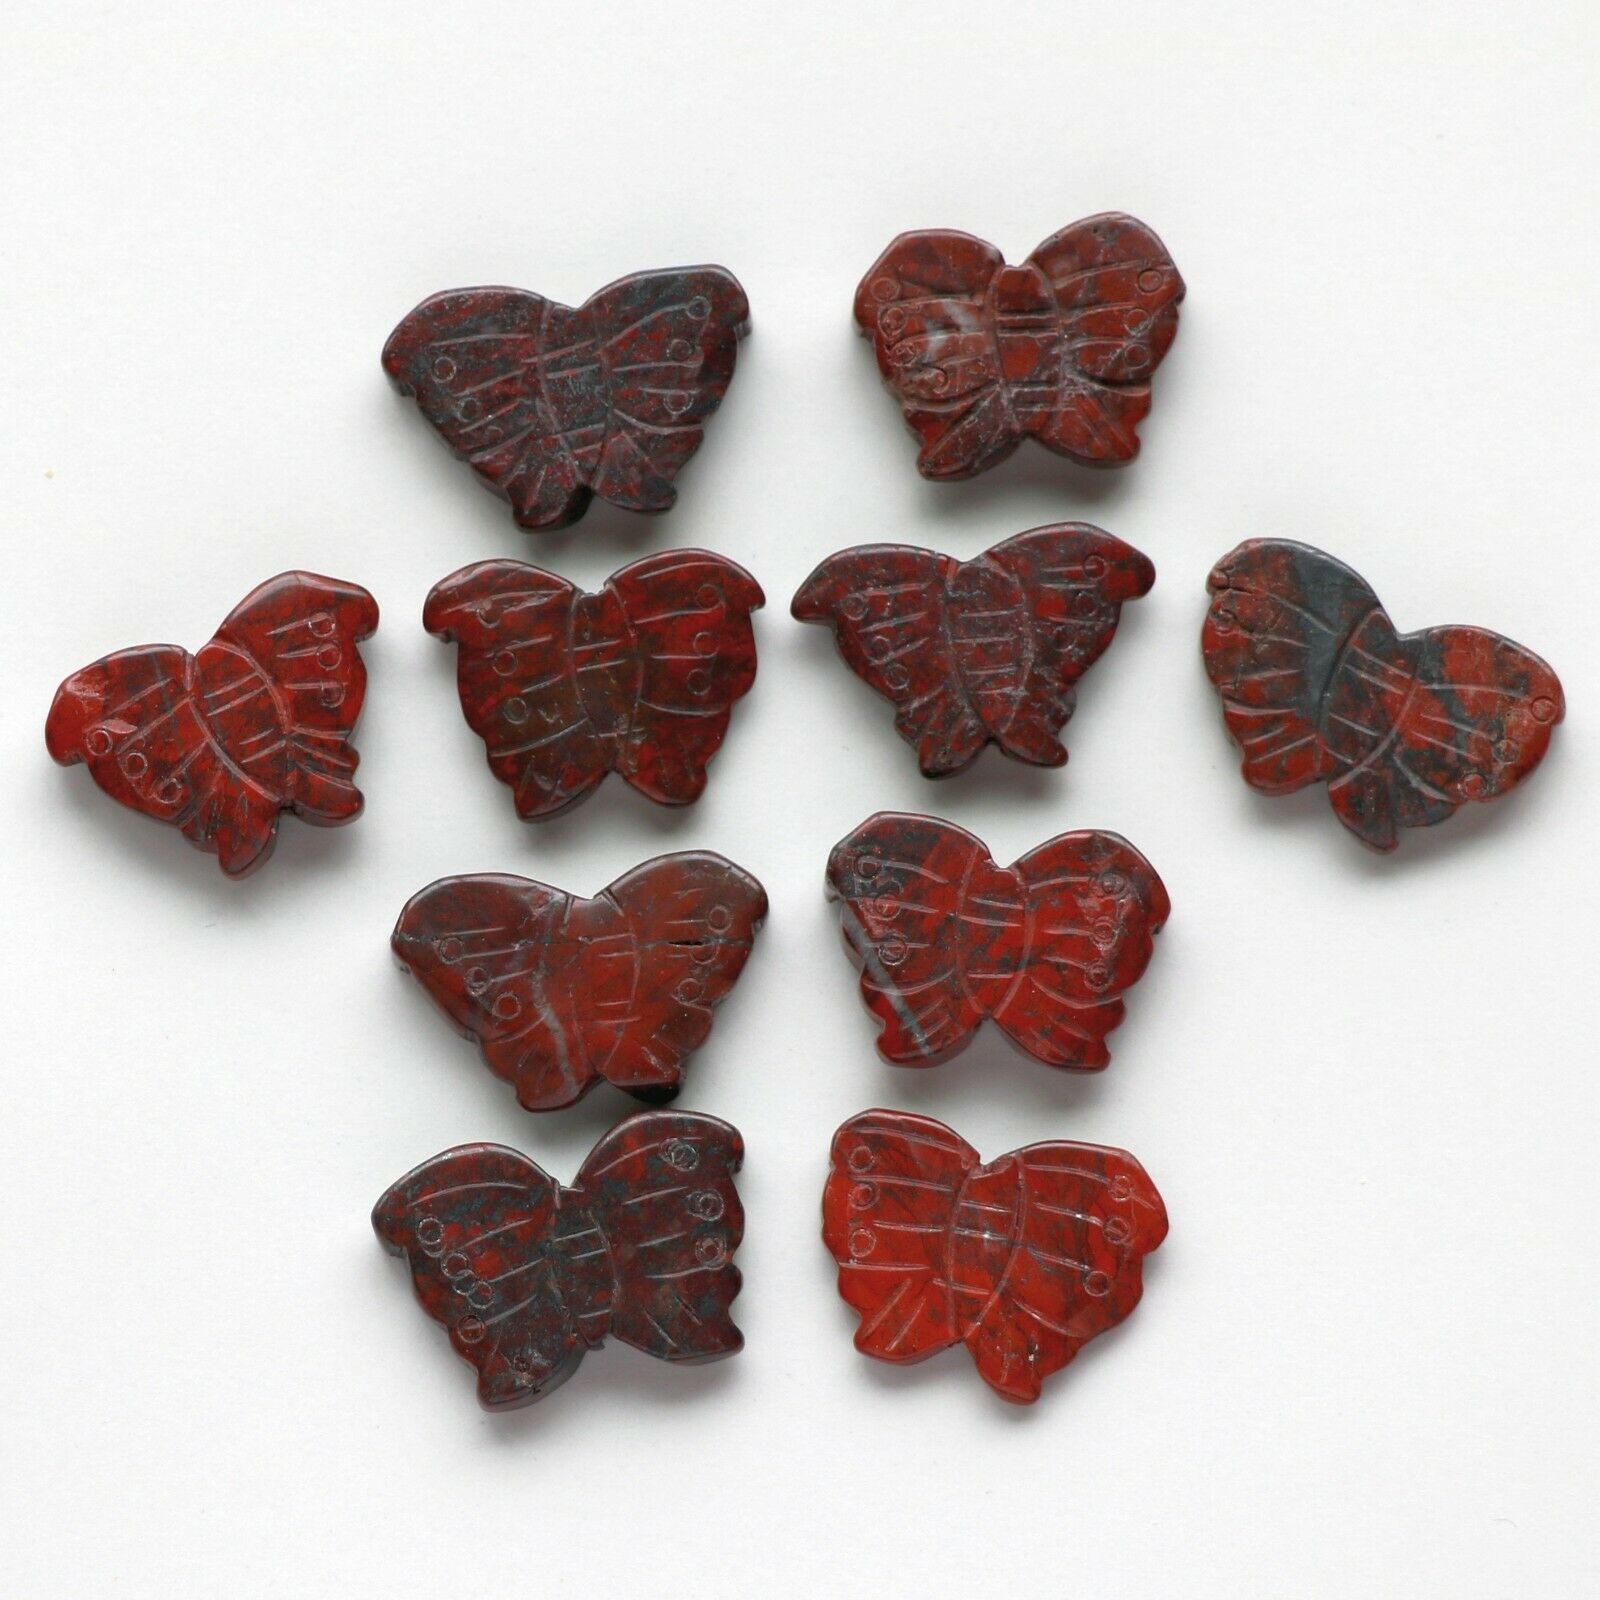 Lot Of 15 Natural Brecciated Jasper Carved Butterfly Pendant Focal Beads - $4.95